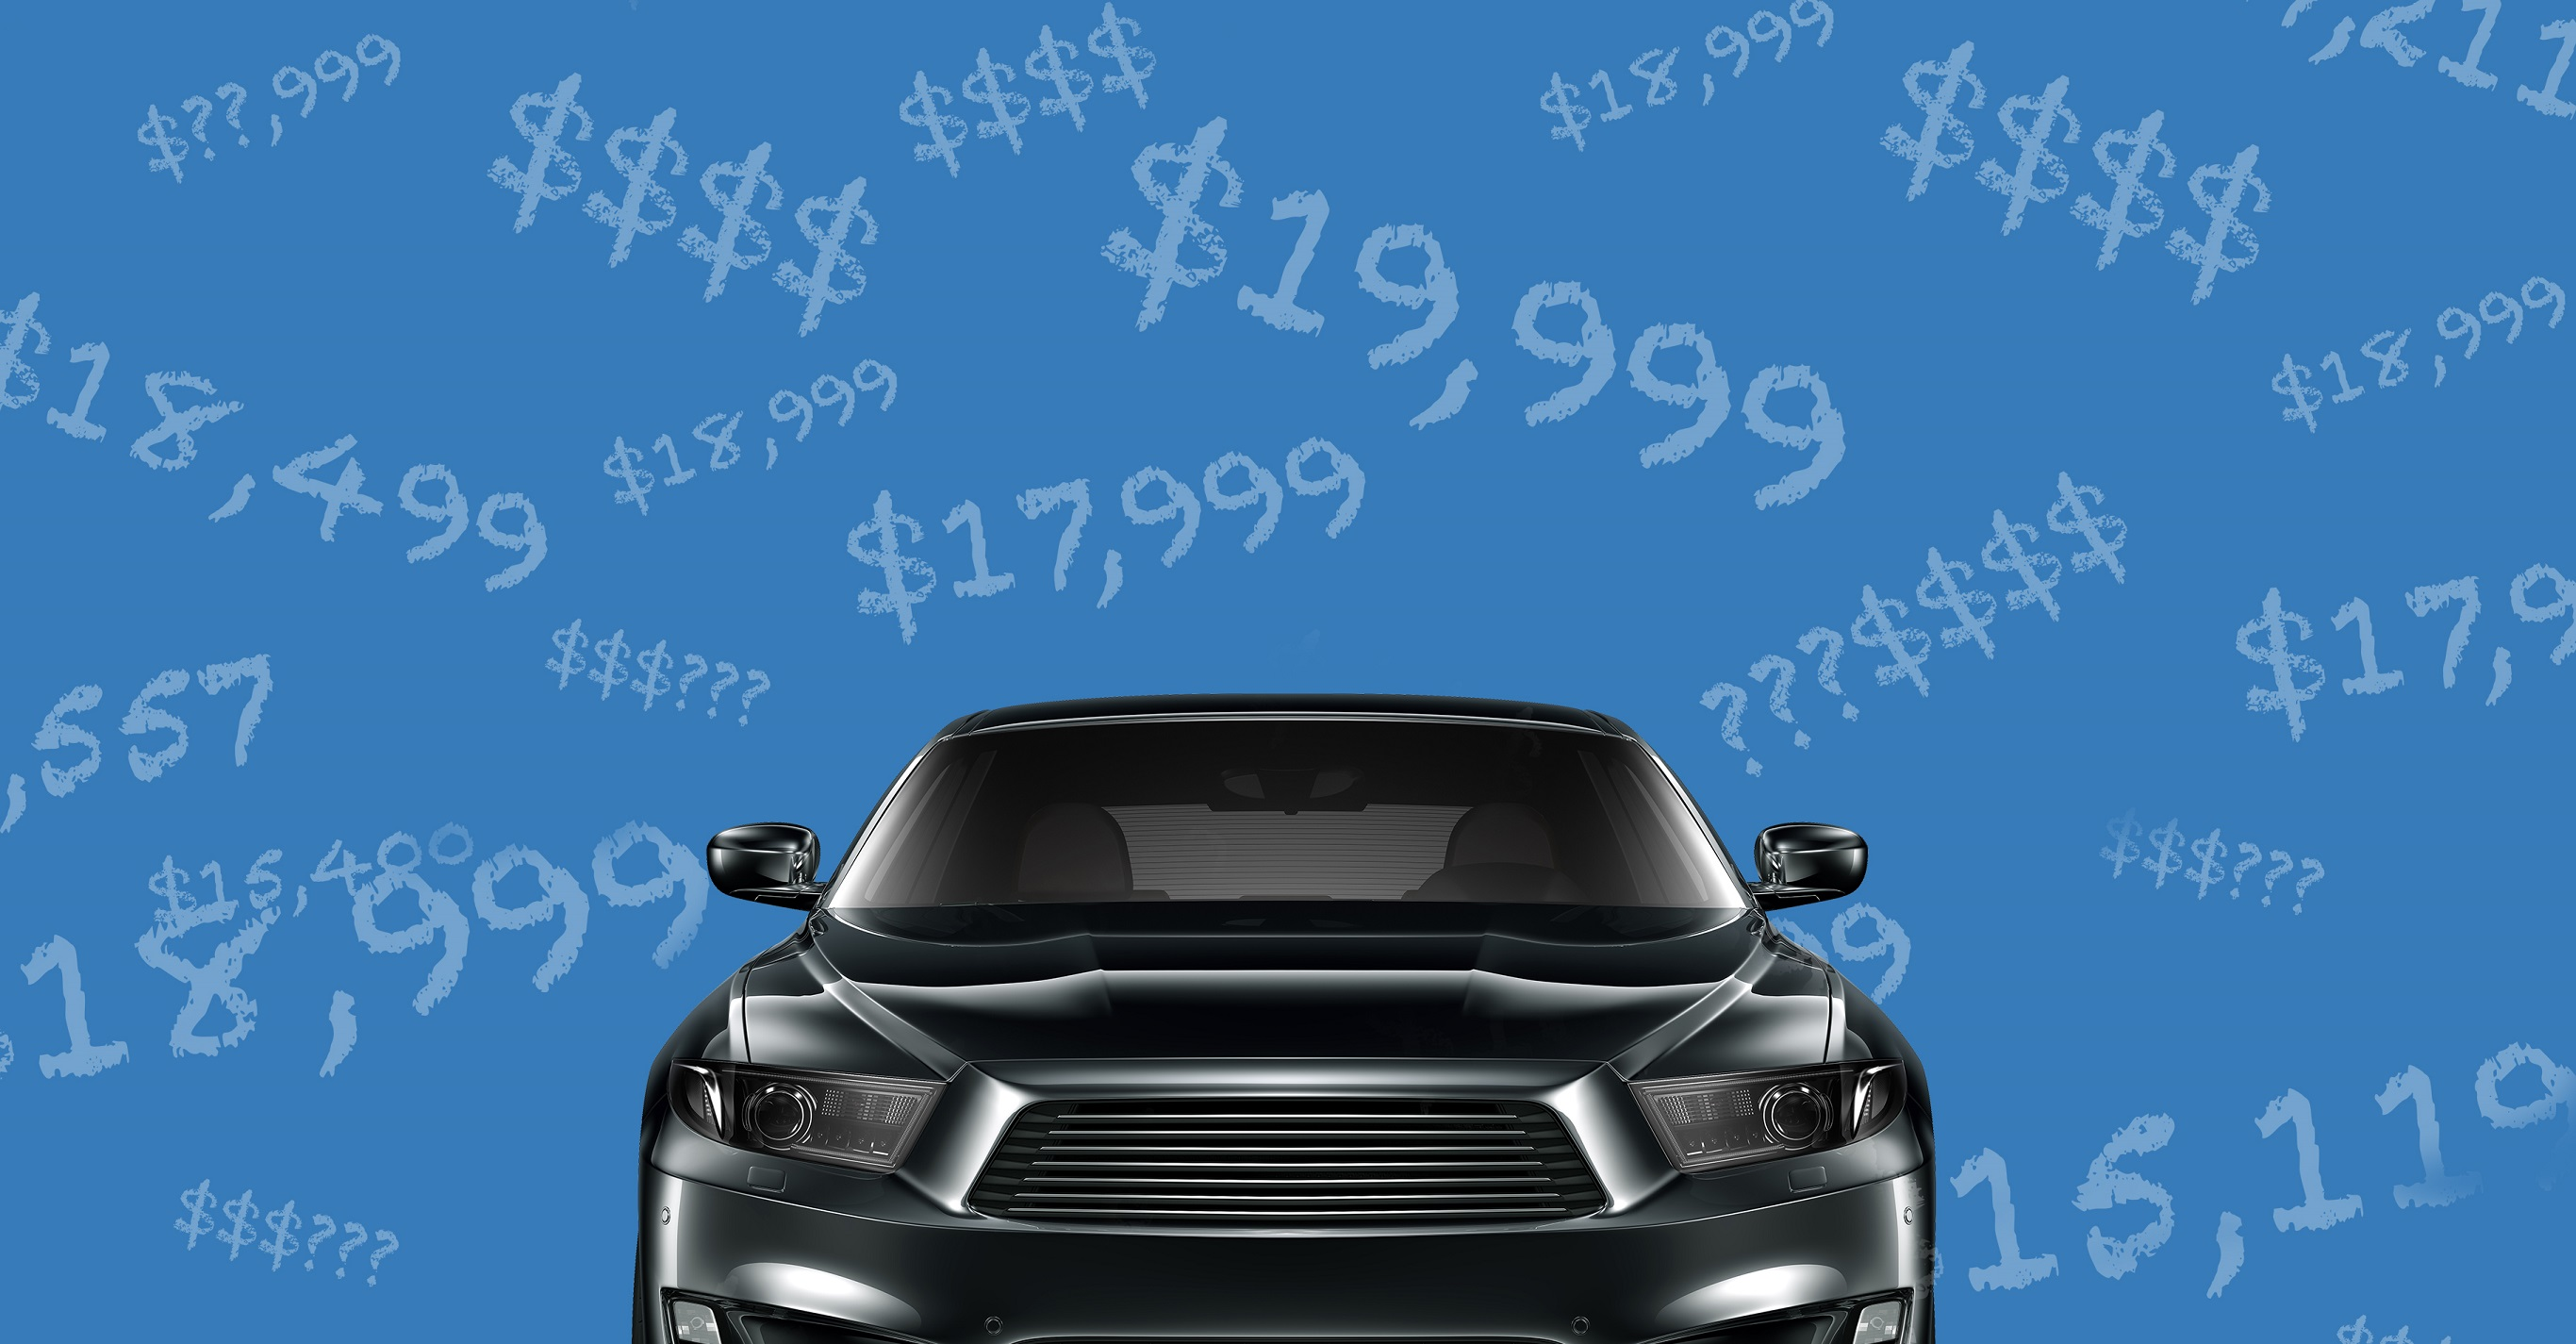 Carfax Car Finder Best Of Carfax Canada Used Car Value Guide